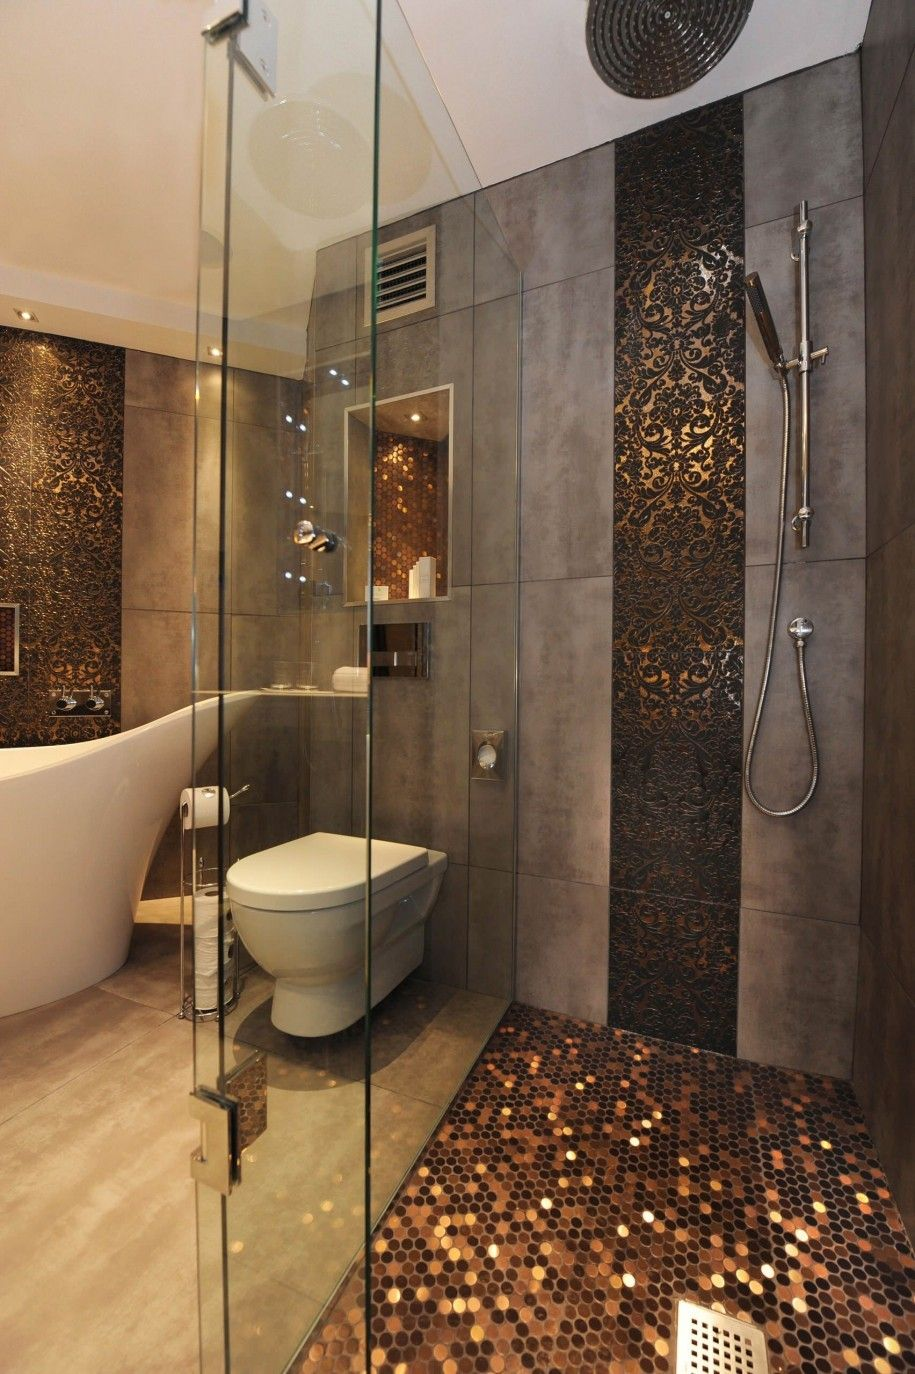 50 Best Wet Room Design Ideas 🚿 | Pinterest | Wet rooms, Cerulean ...